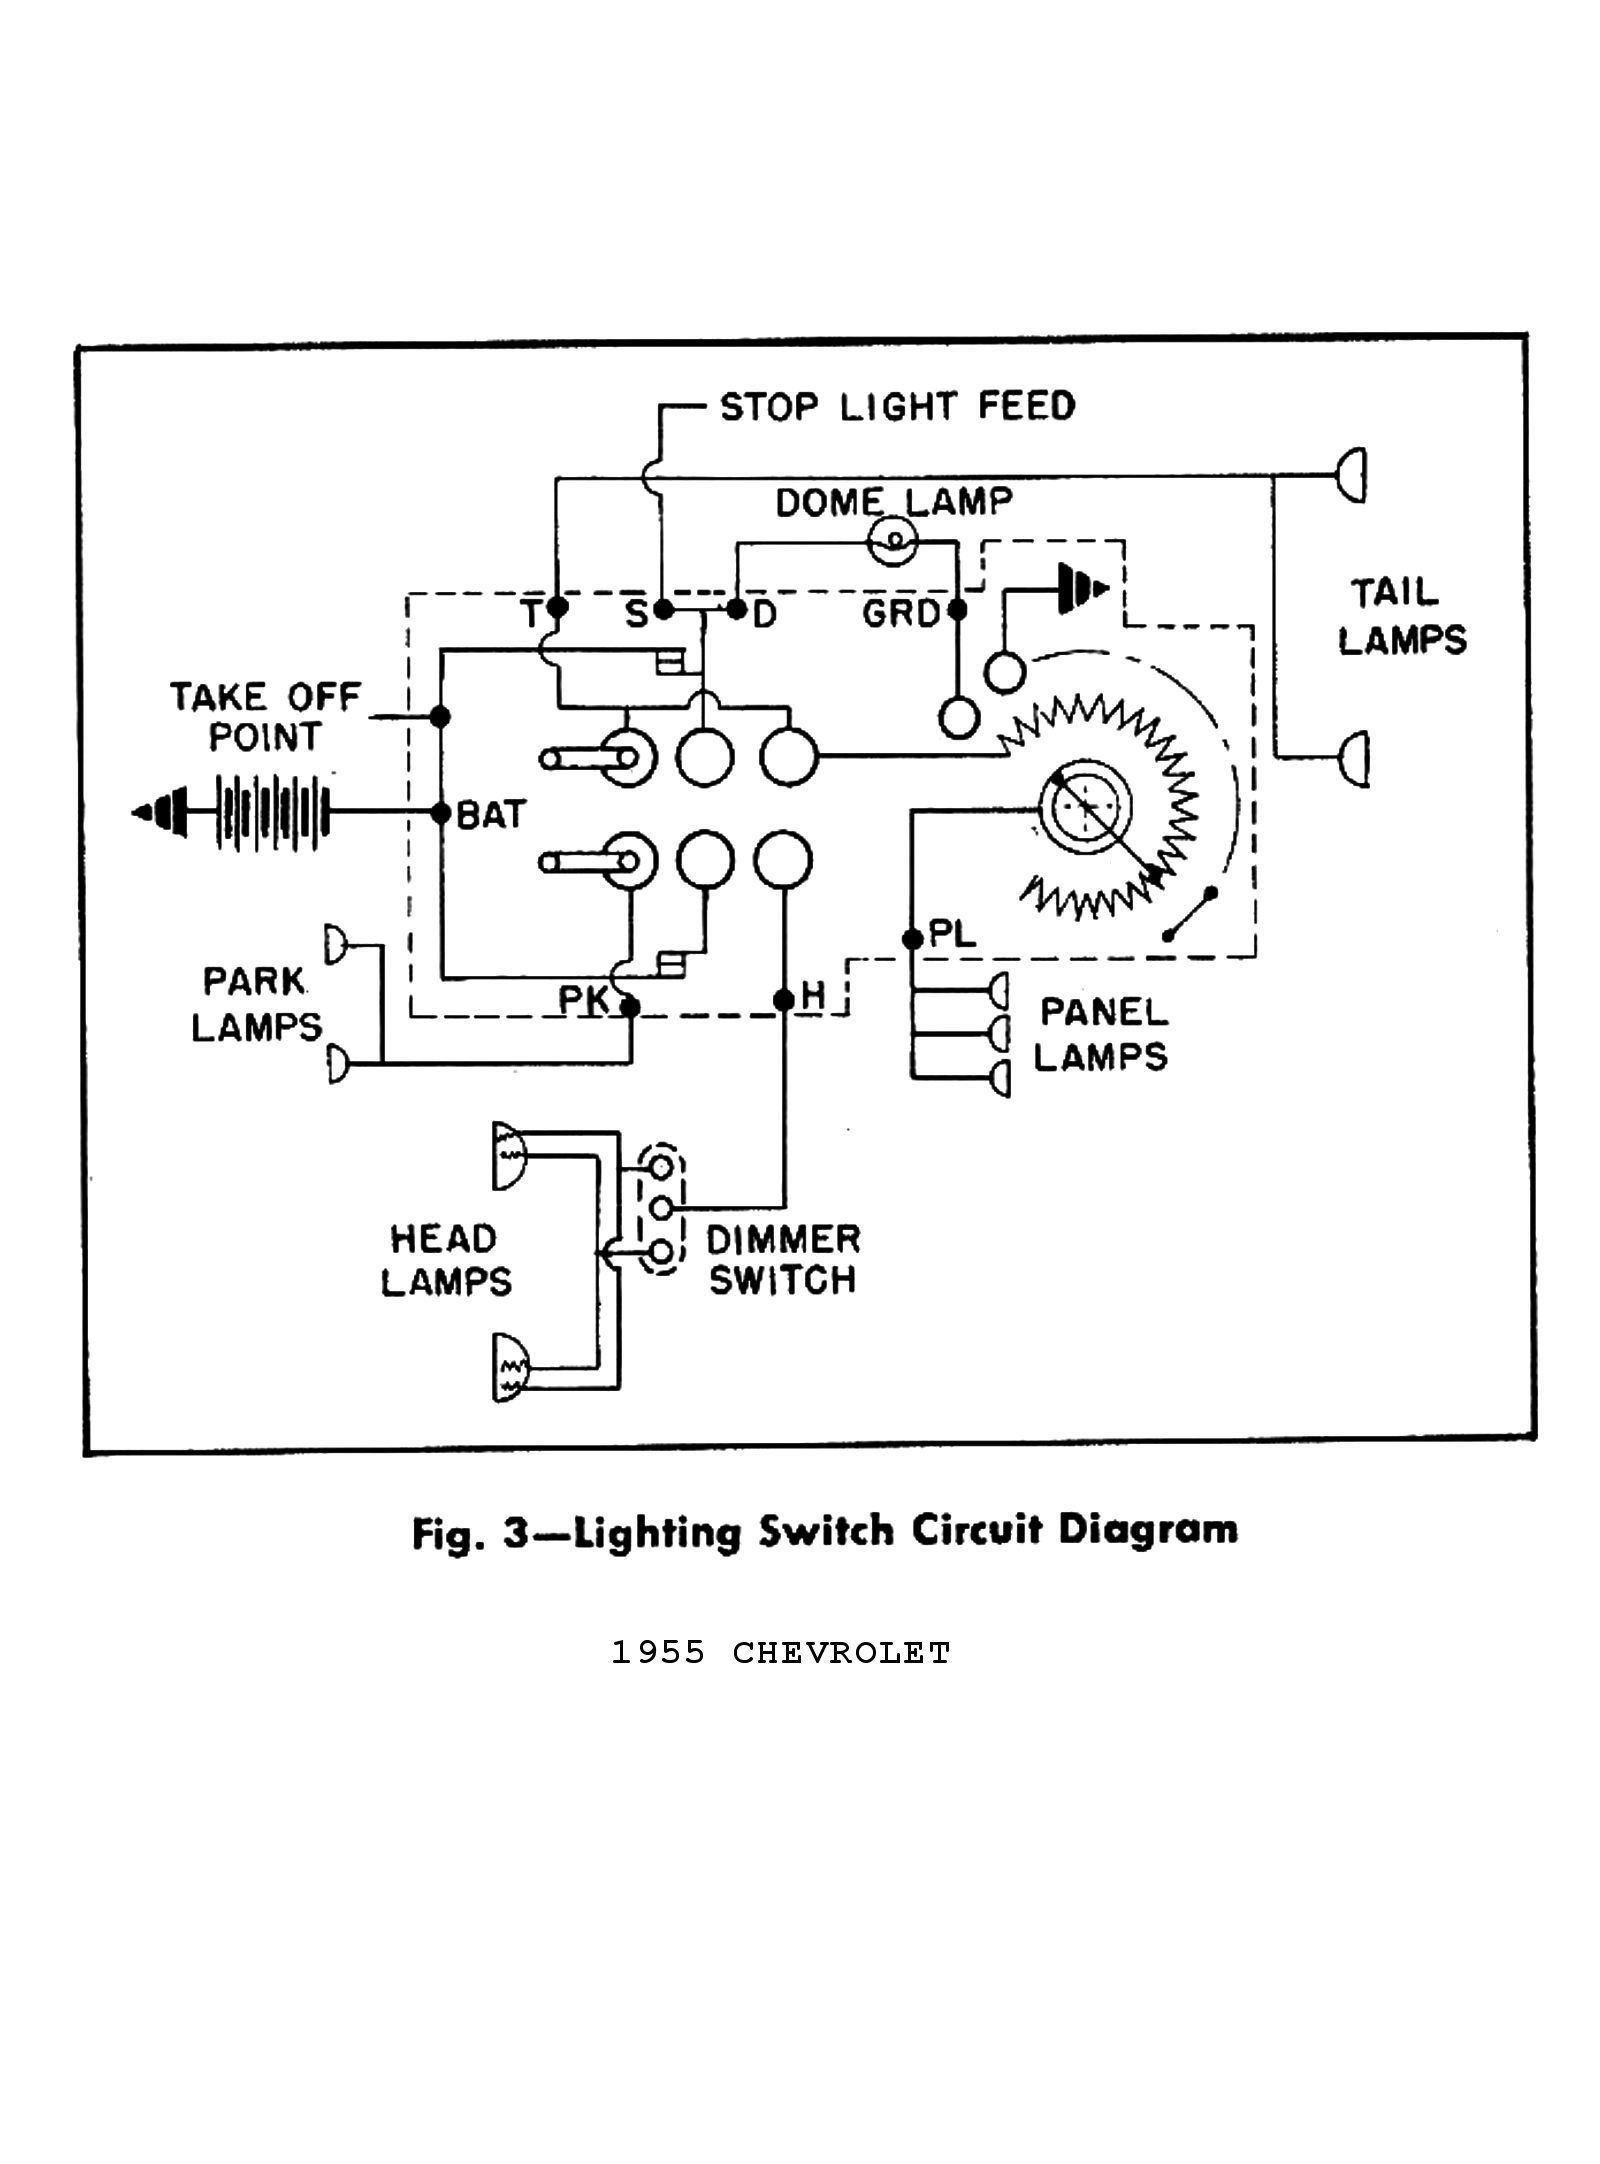 medium resolution of chevy ignition wiring diagram wiring diagram valueuniversal ignition switch wiring diagram inspirational 1955 chevy of 2002